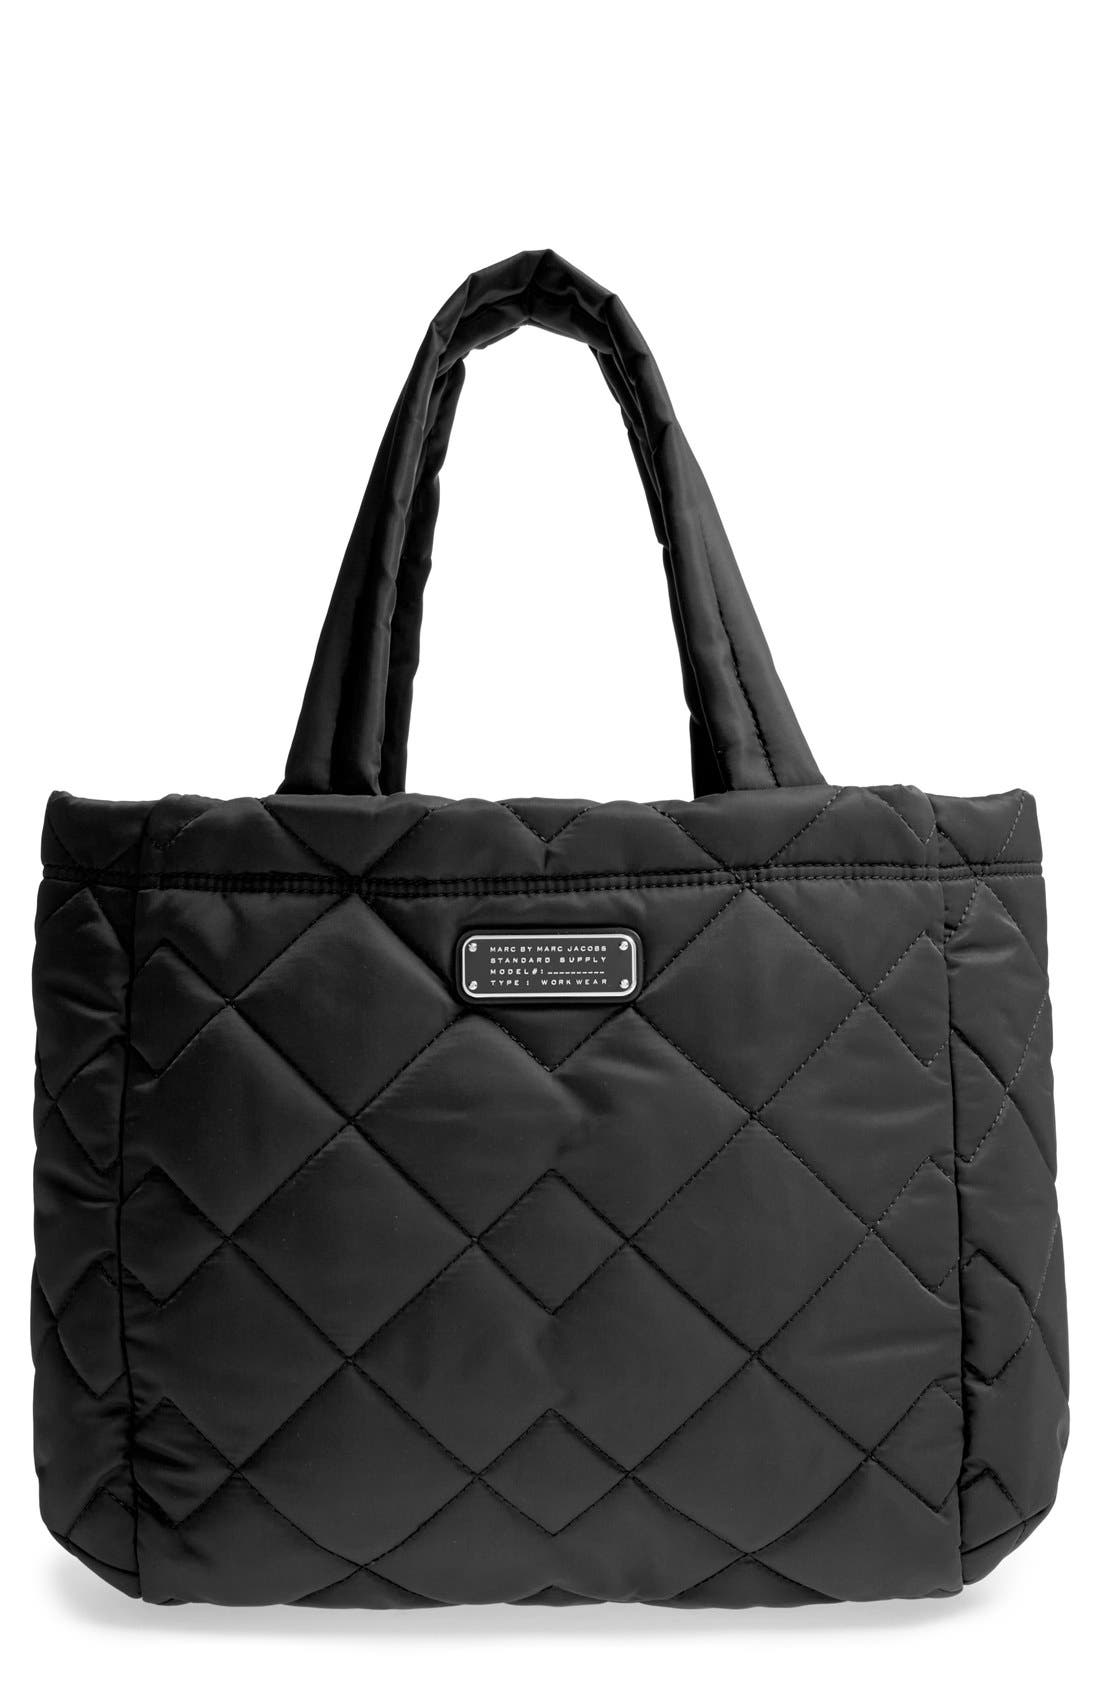 Alternate Image 1 Selected - MARC BY MARC JACOBS 'Small Crosby' Quilted Nylon Tote